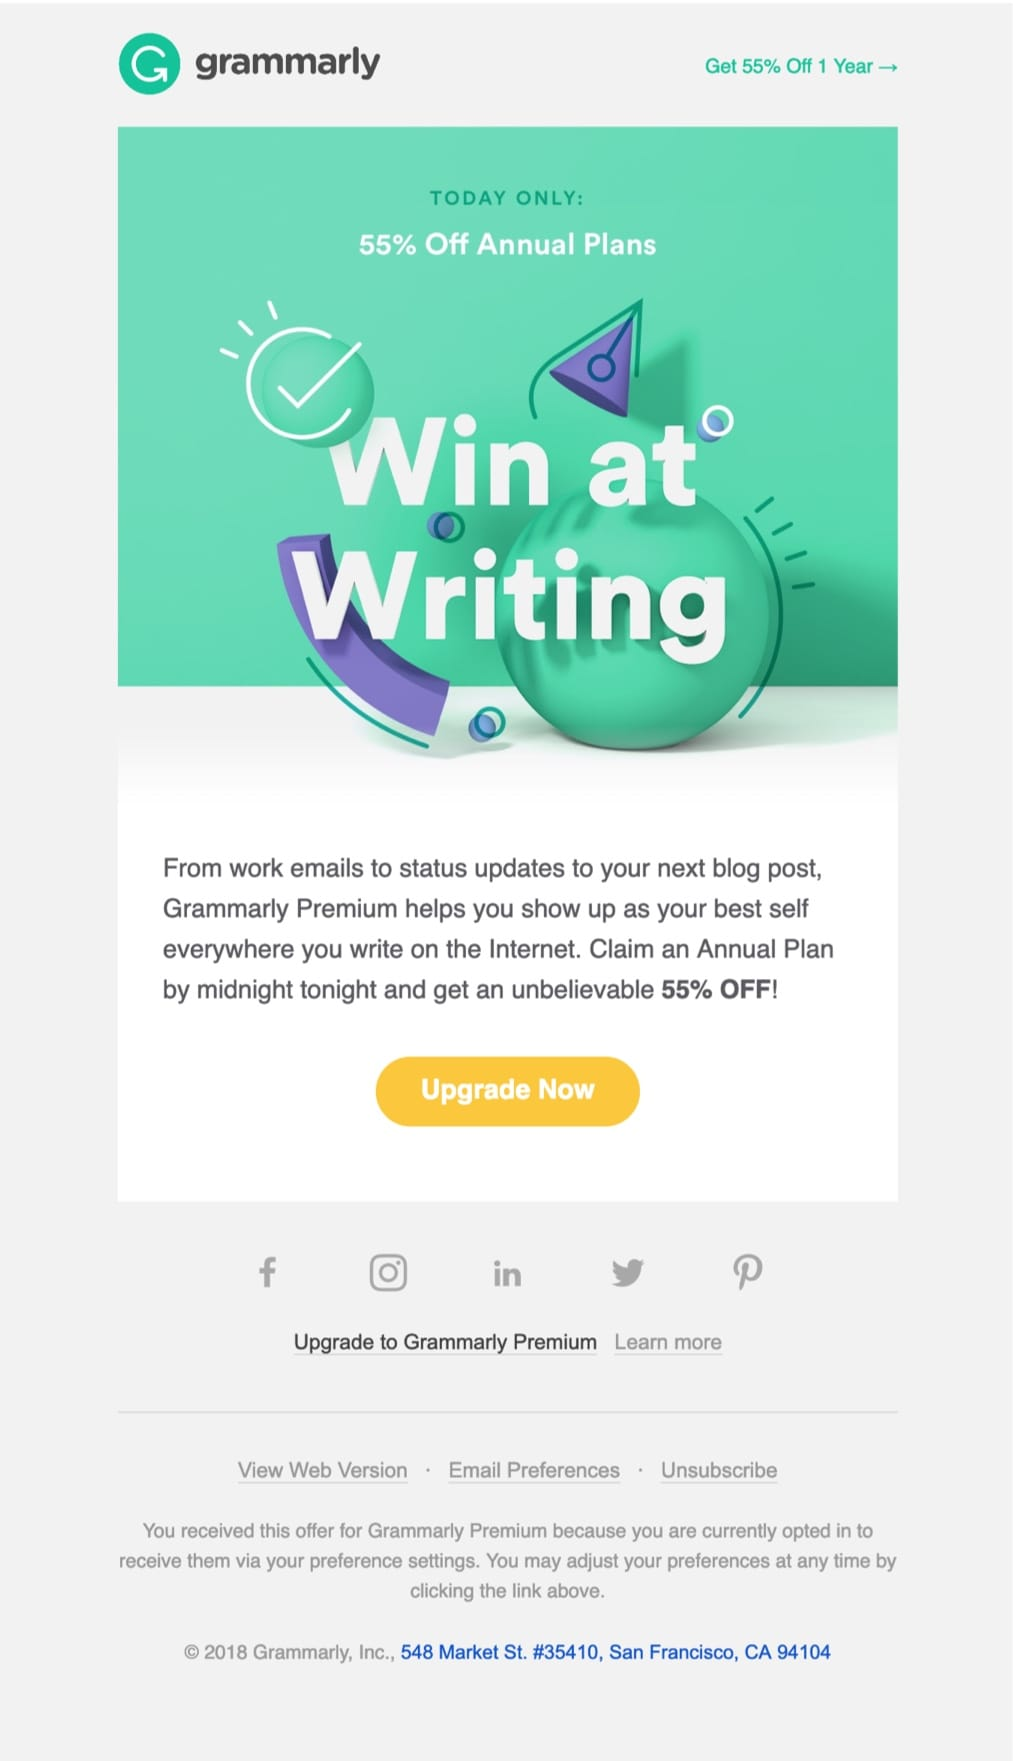 f02cddd96433 promotional email example grammarly (sale email)